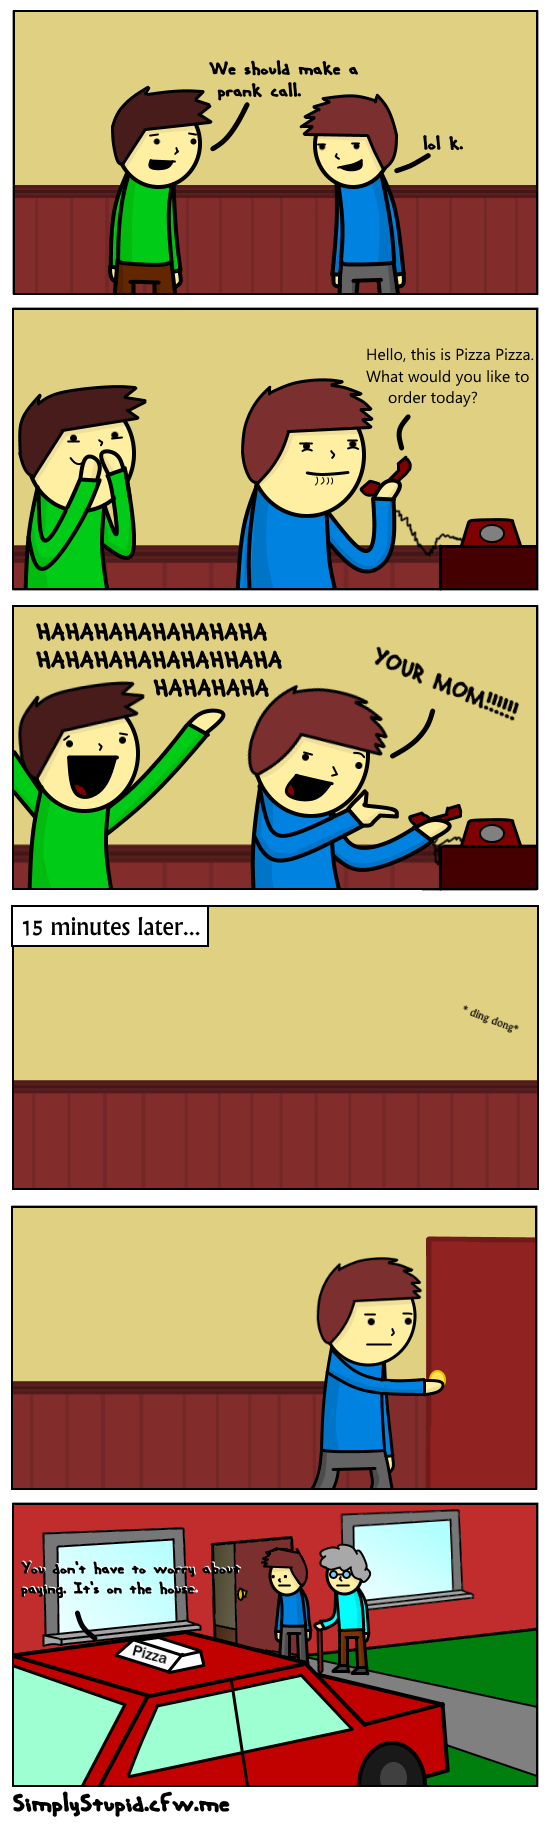 Your Mom!!!